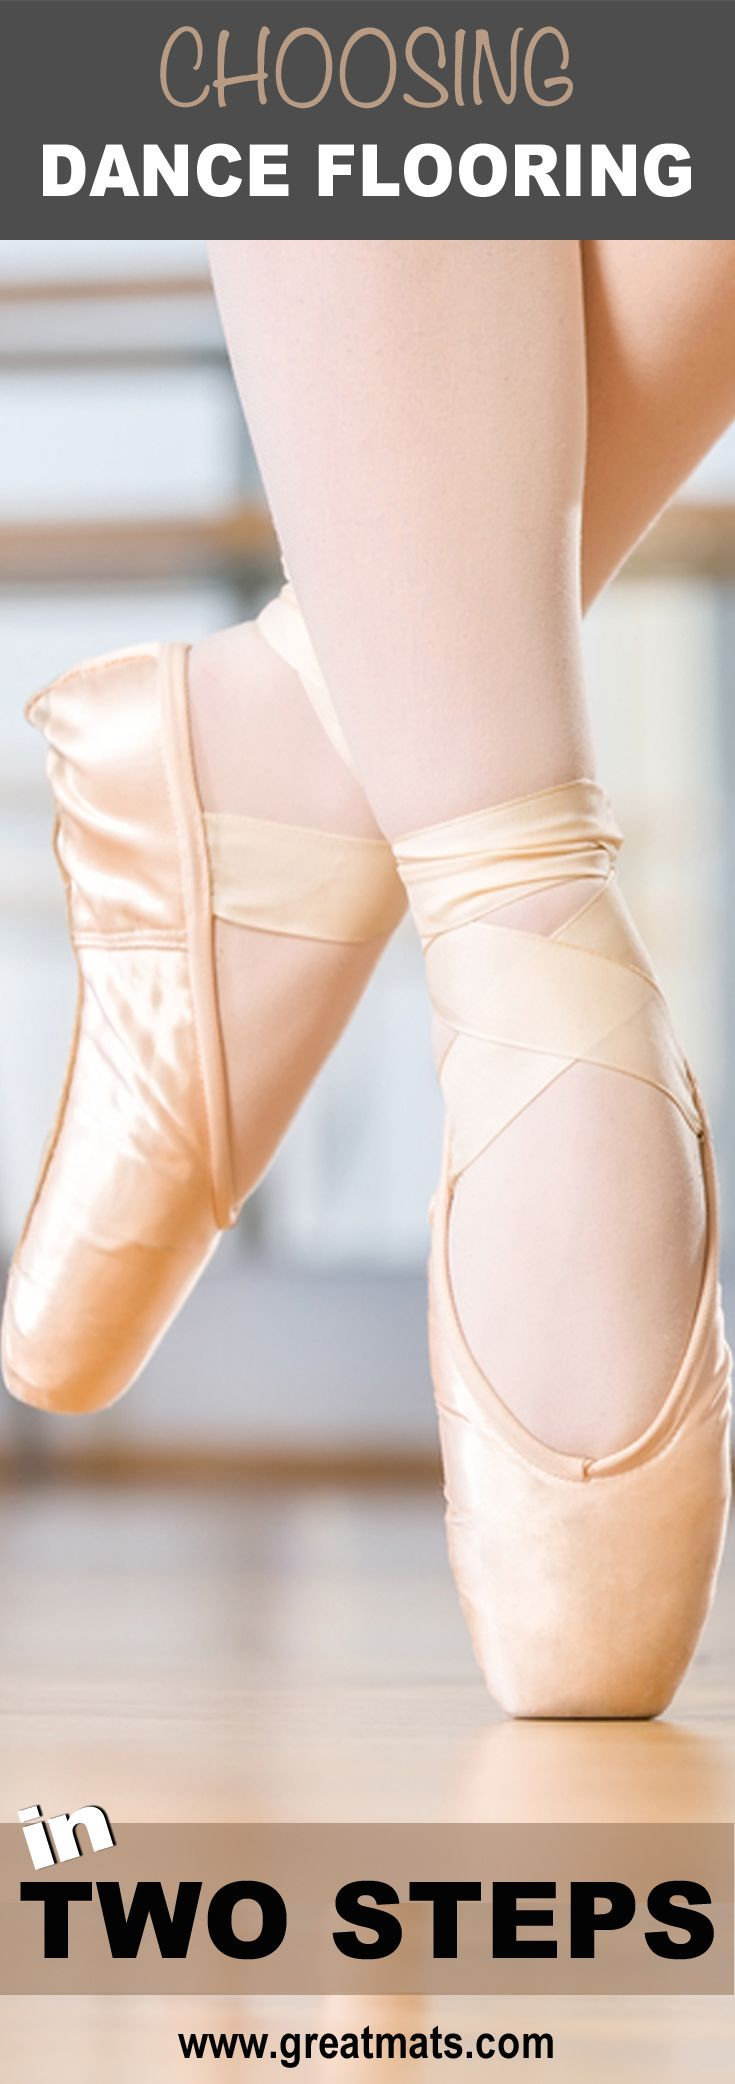 Learn the two most important steps in choosing the right dance flooring for your form and location.